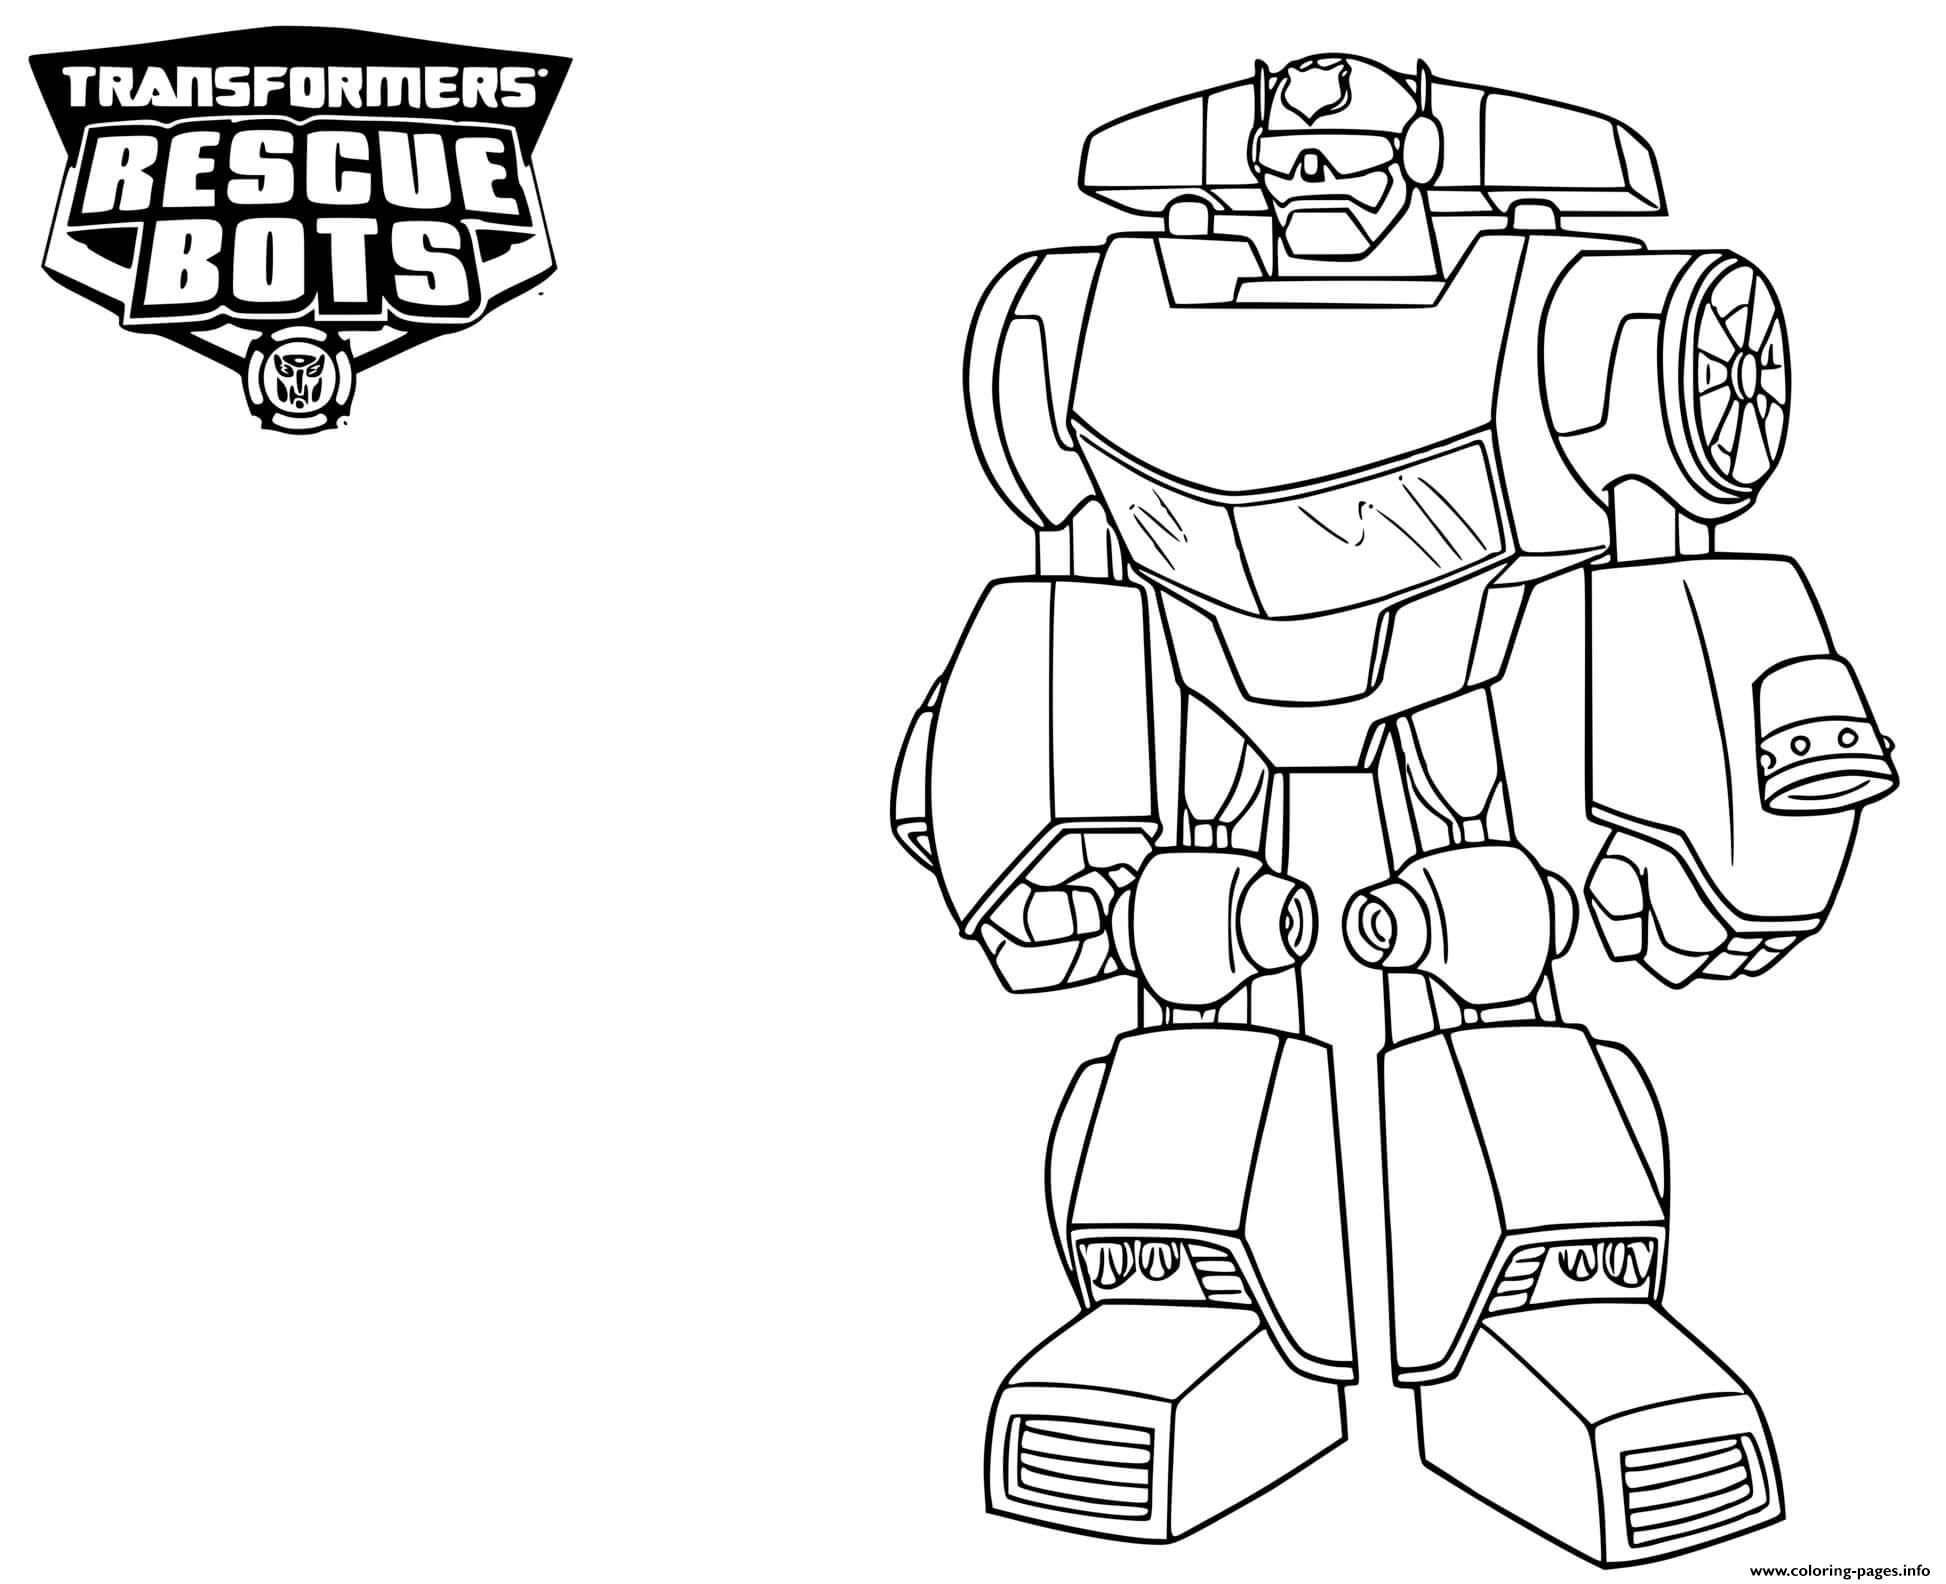 transformers rescue bots coloring printable bot 1604425878transformers capital in cursive coloring pages Rescue Bot Coloring Page